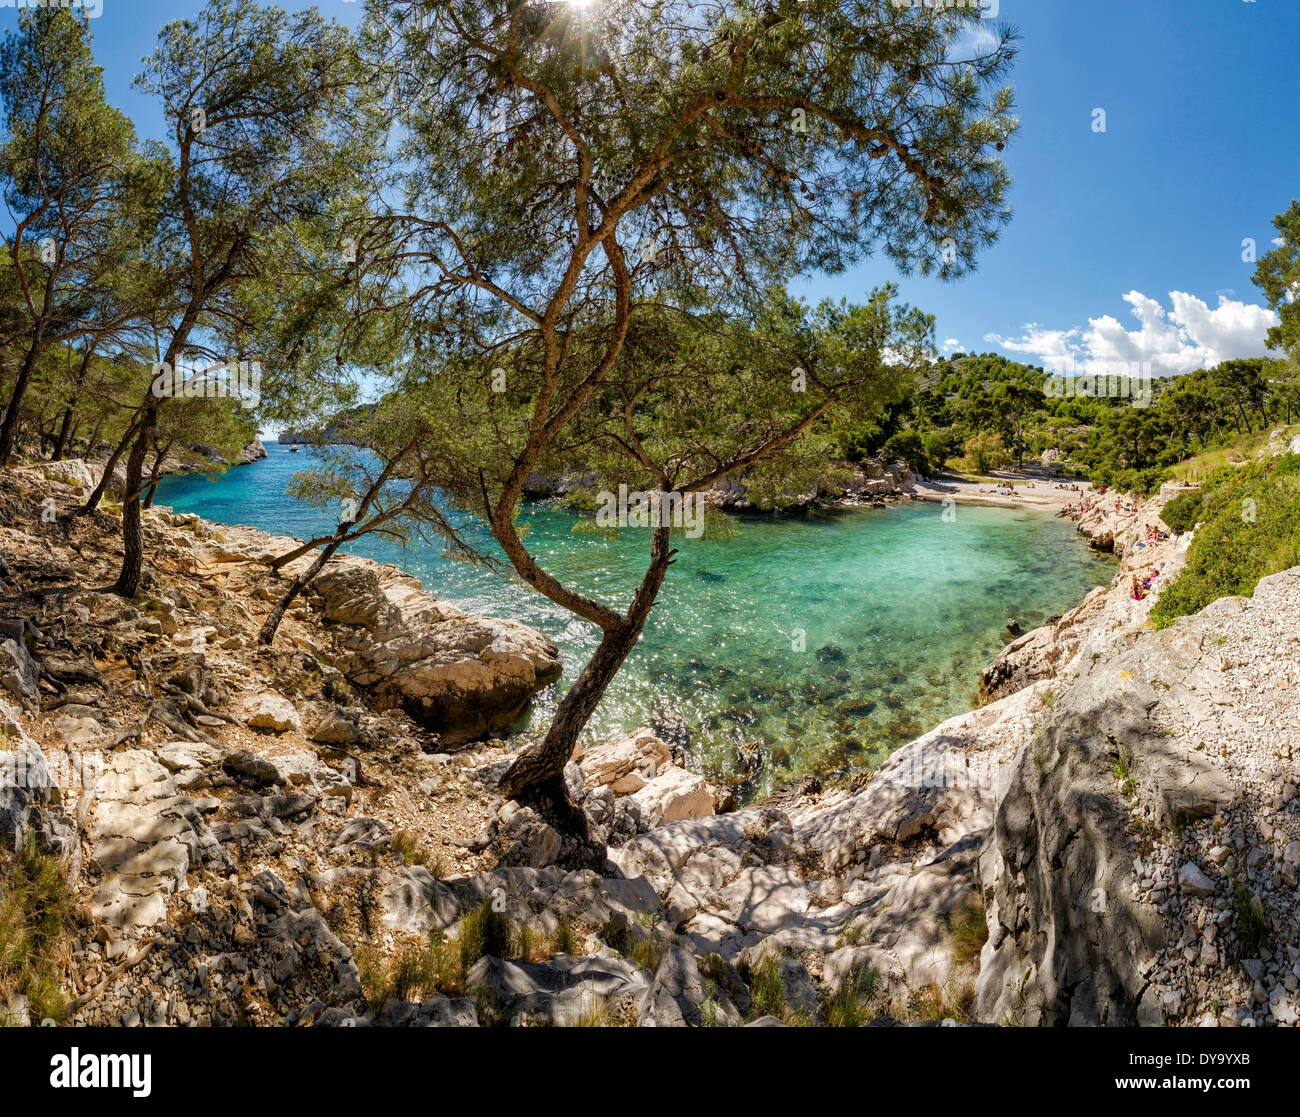 Calanque de Port Pin calanque rocky bay landscape water trees spring mountains sea Cassis Bouches du Rhone France Europe, - Stock Image